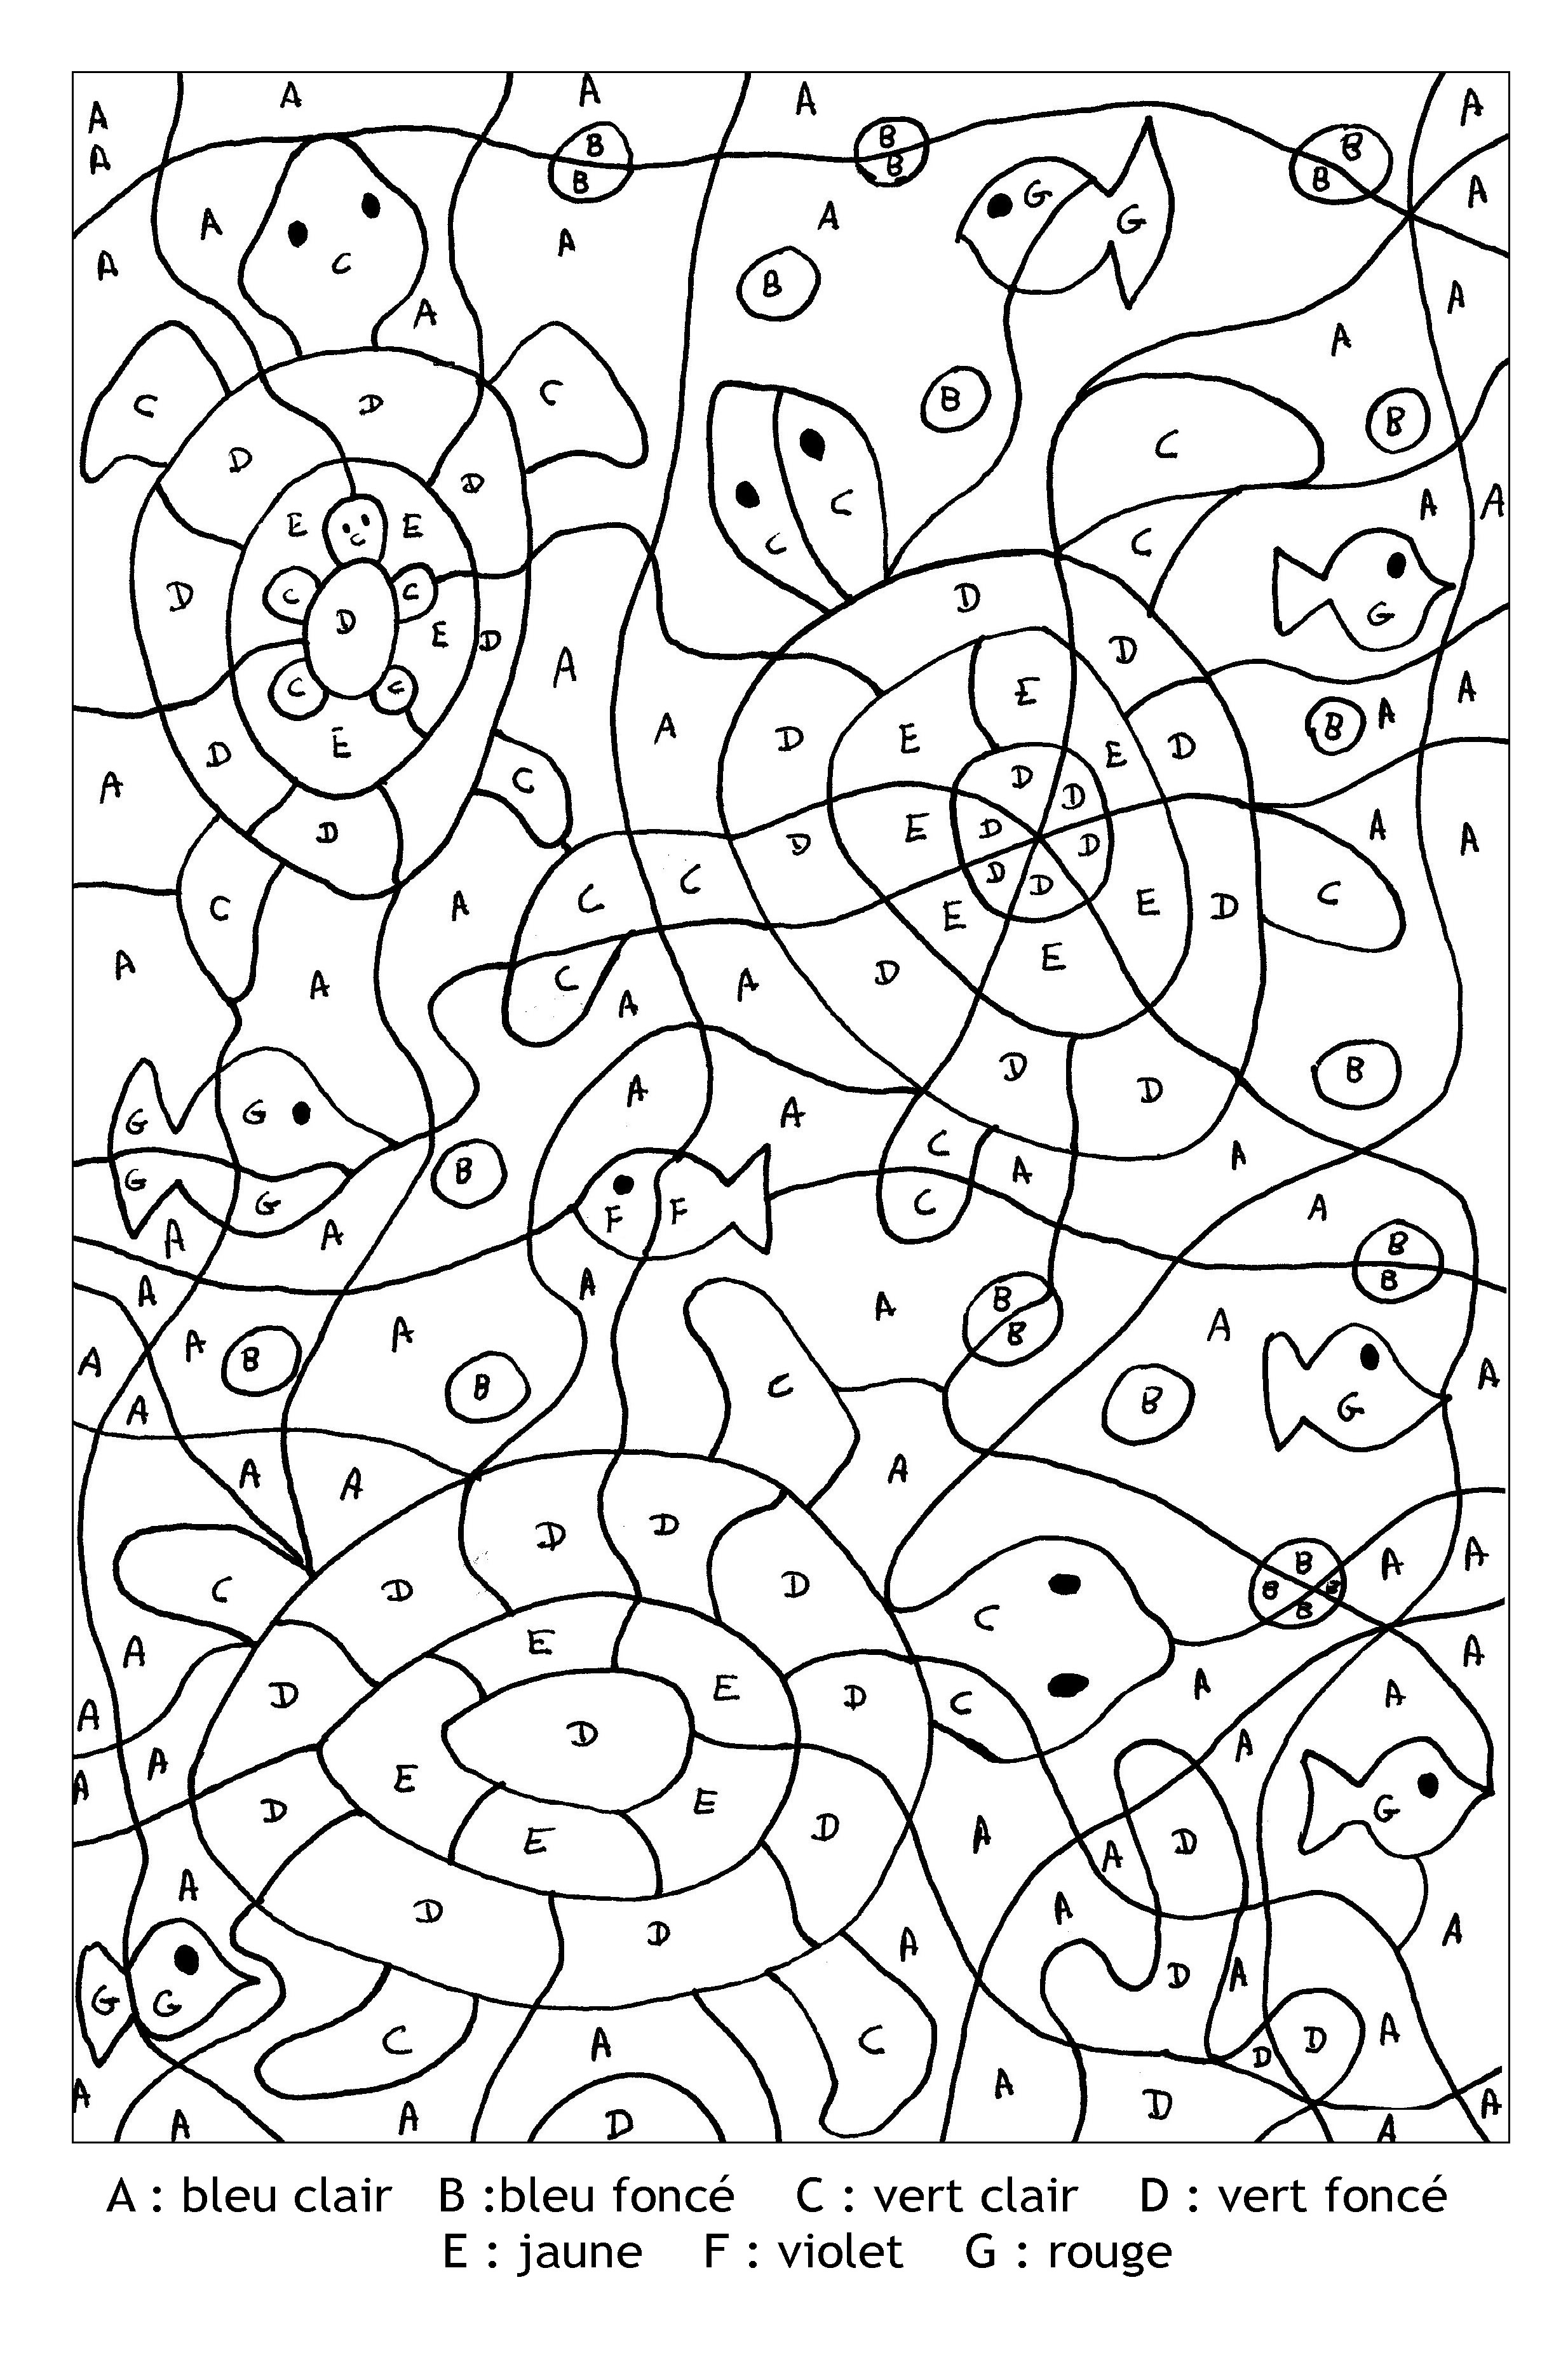 magic coloring page magic coloring pages page magic coloring 1 3